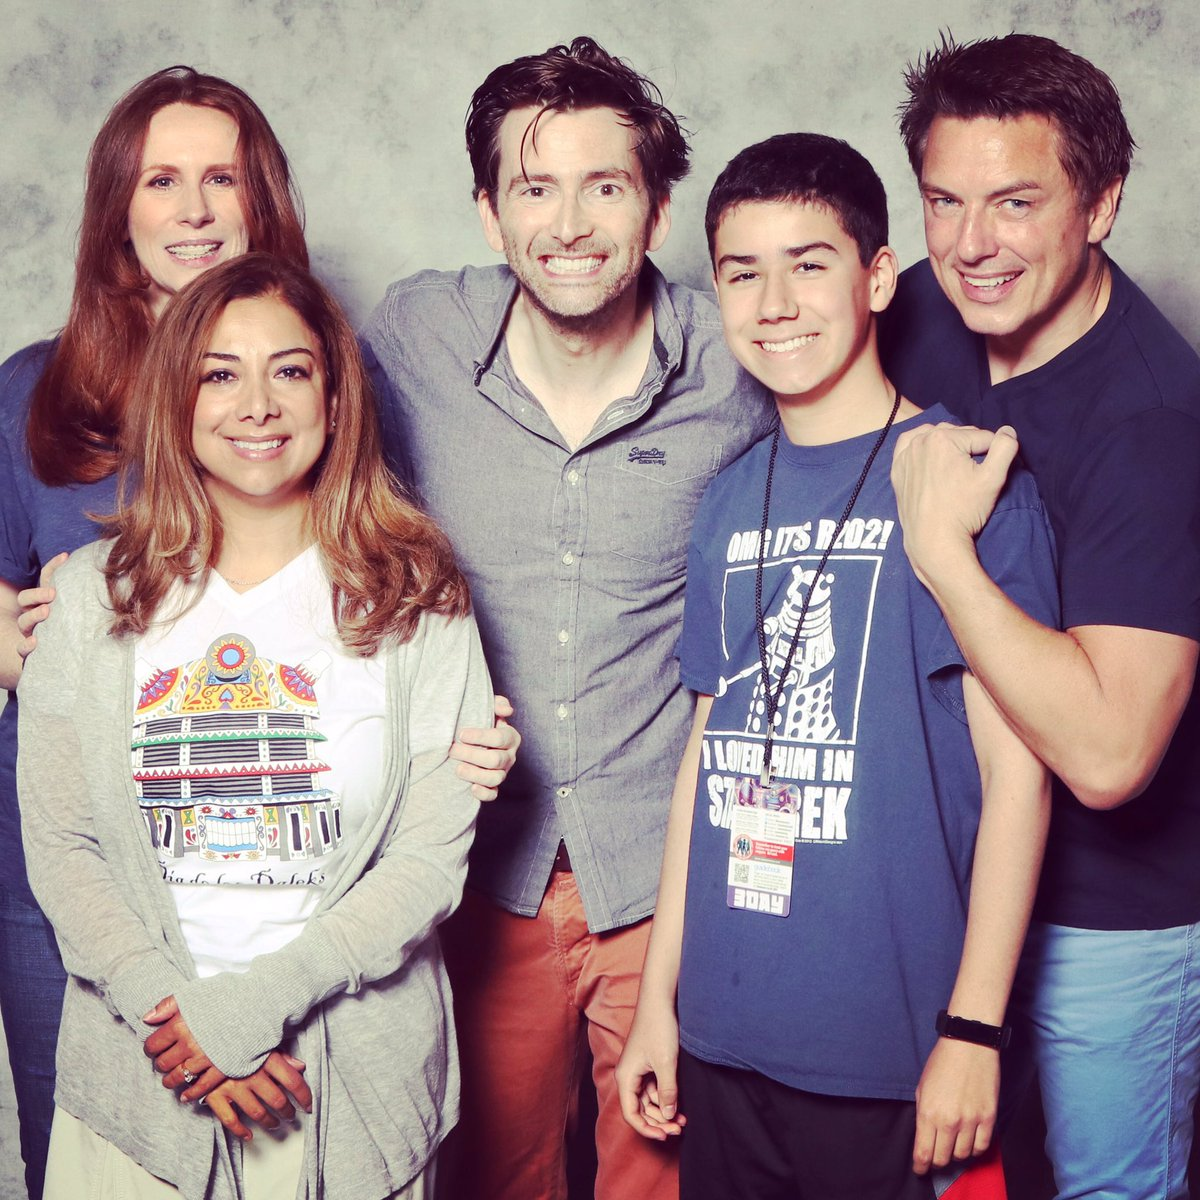 On Saturday 17th And Sunday 18th June 2017 David Tennant John Barrowman Catherine Tate Attended The Awesome Con Fan Convention In Washington DC